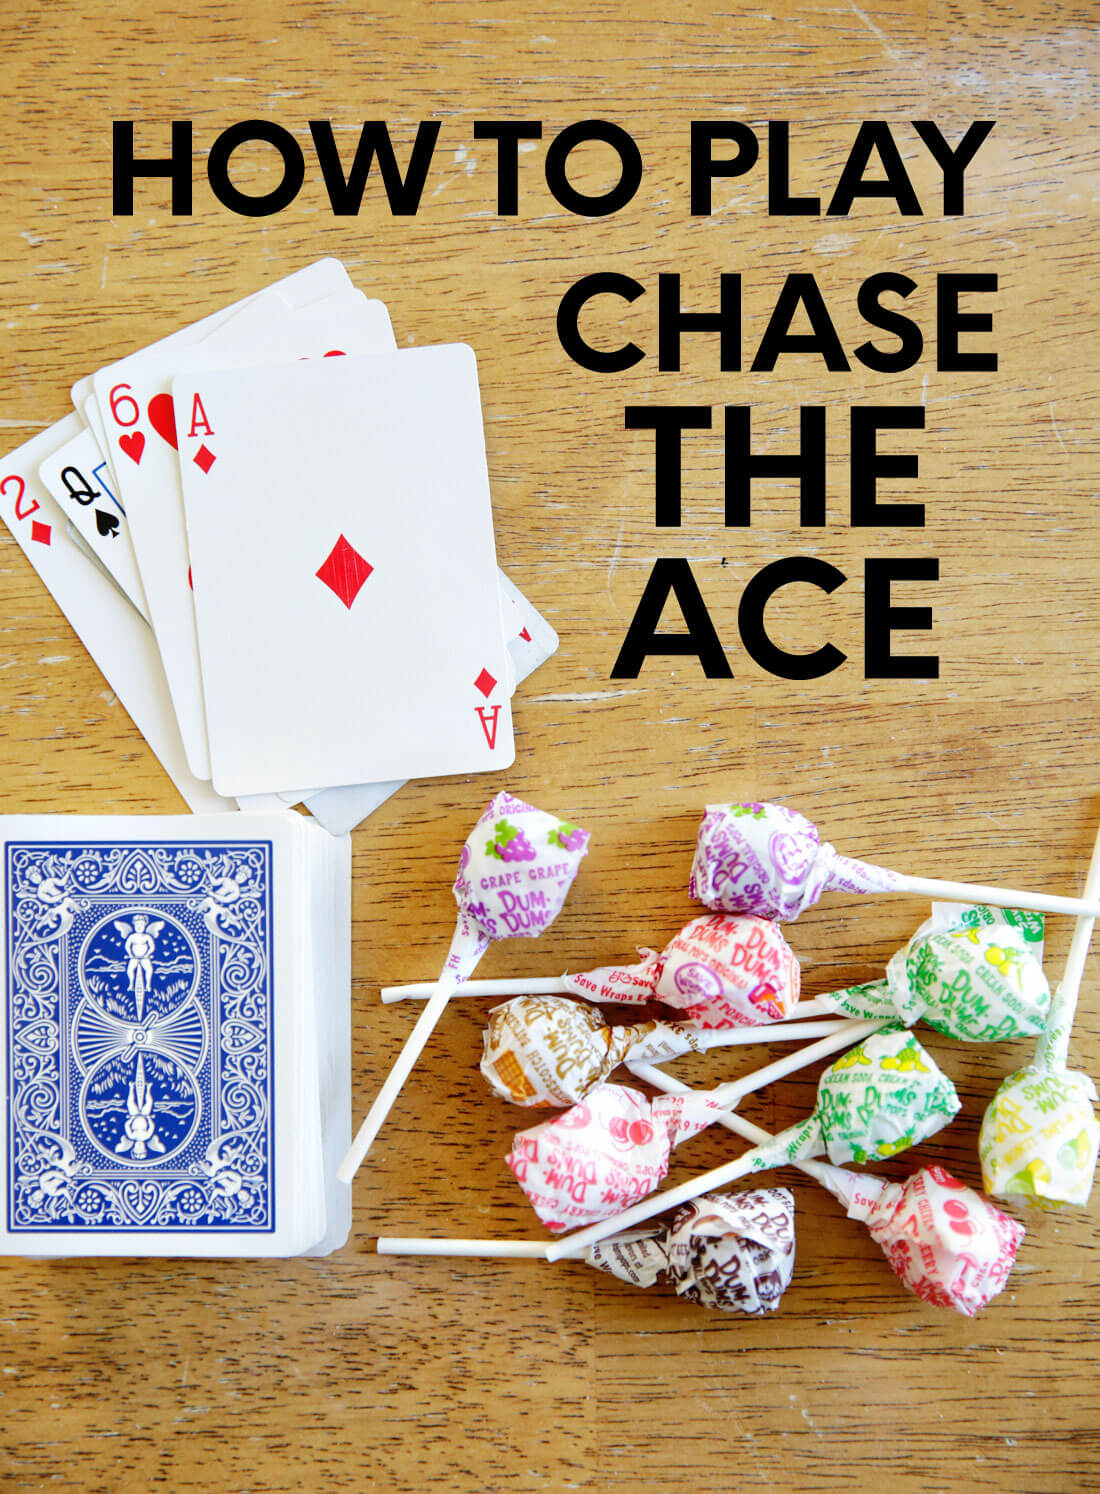 How to Play Chase the Ace